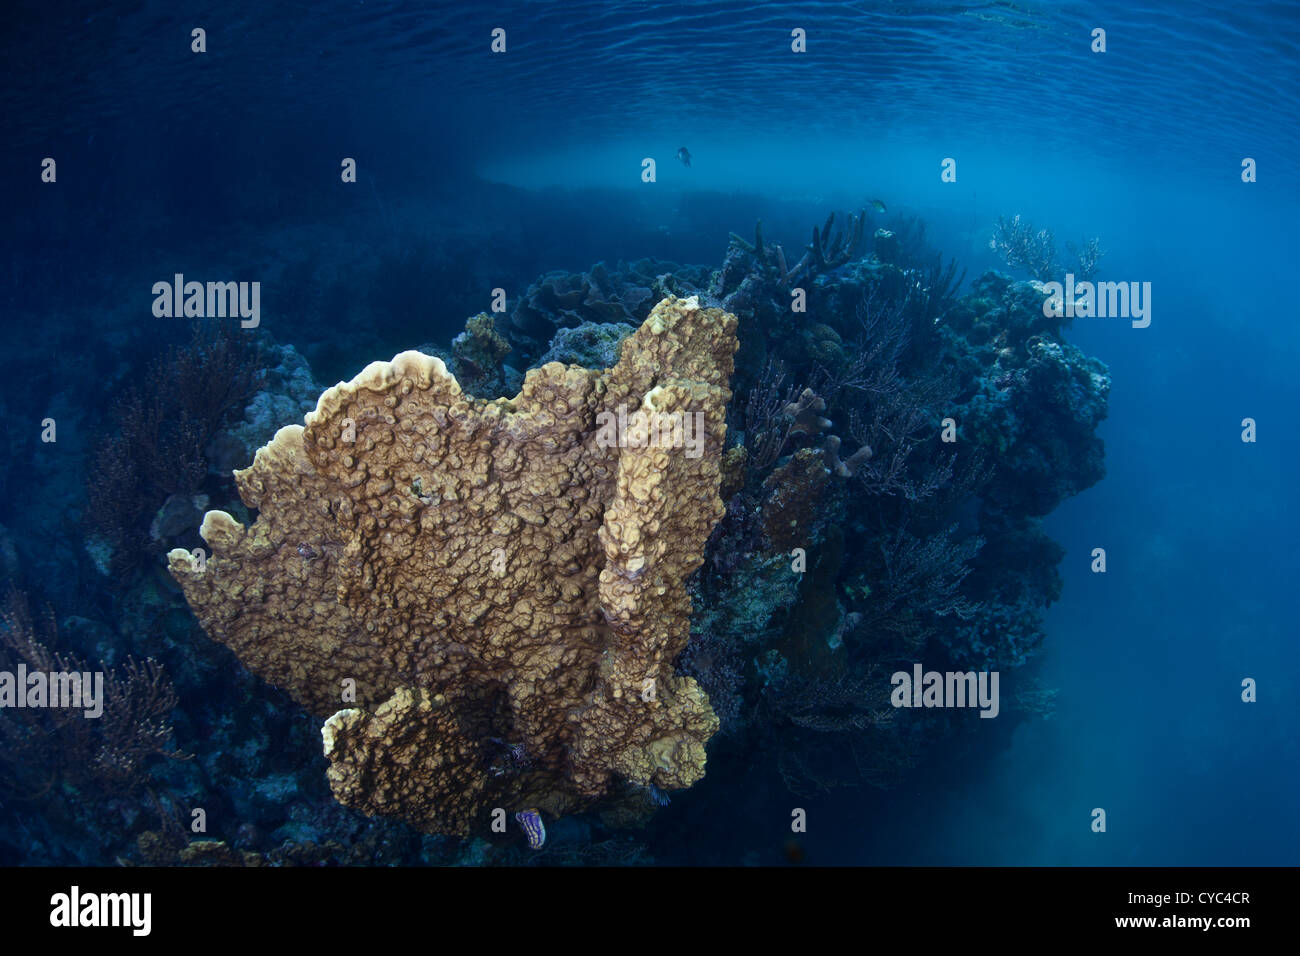 A fire coral colony, Millipora sp., grows in a serene marine lake protected by high limestone islands that surround - Stock Image